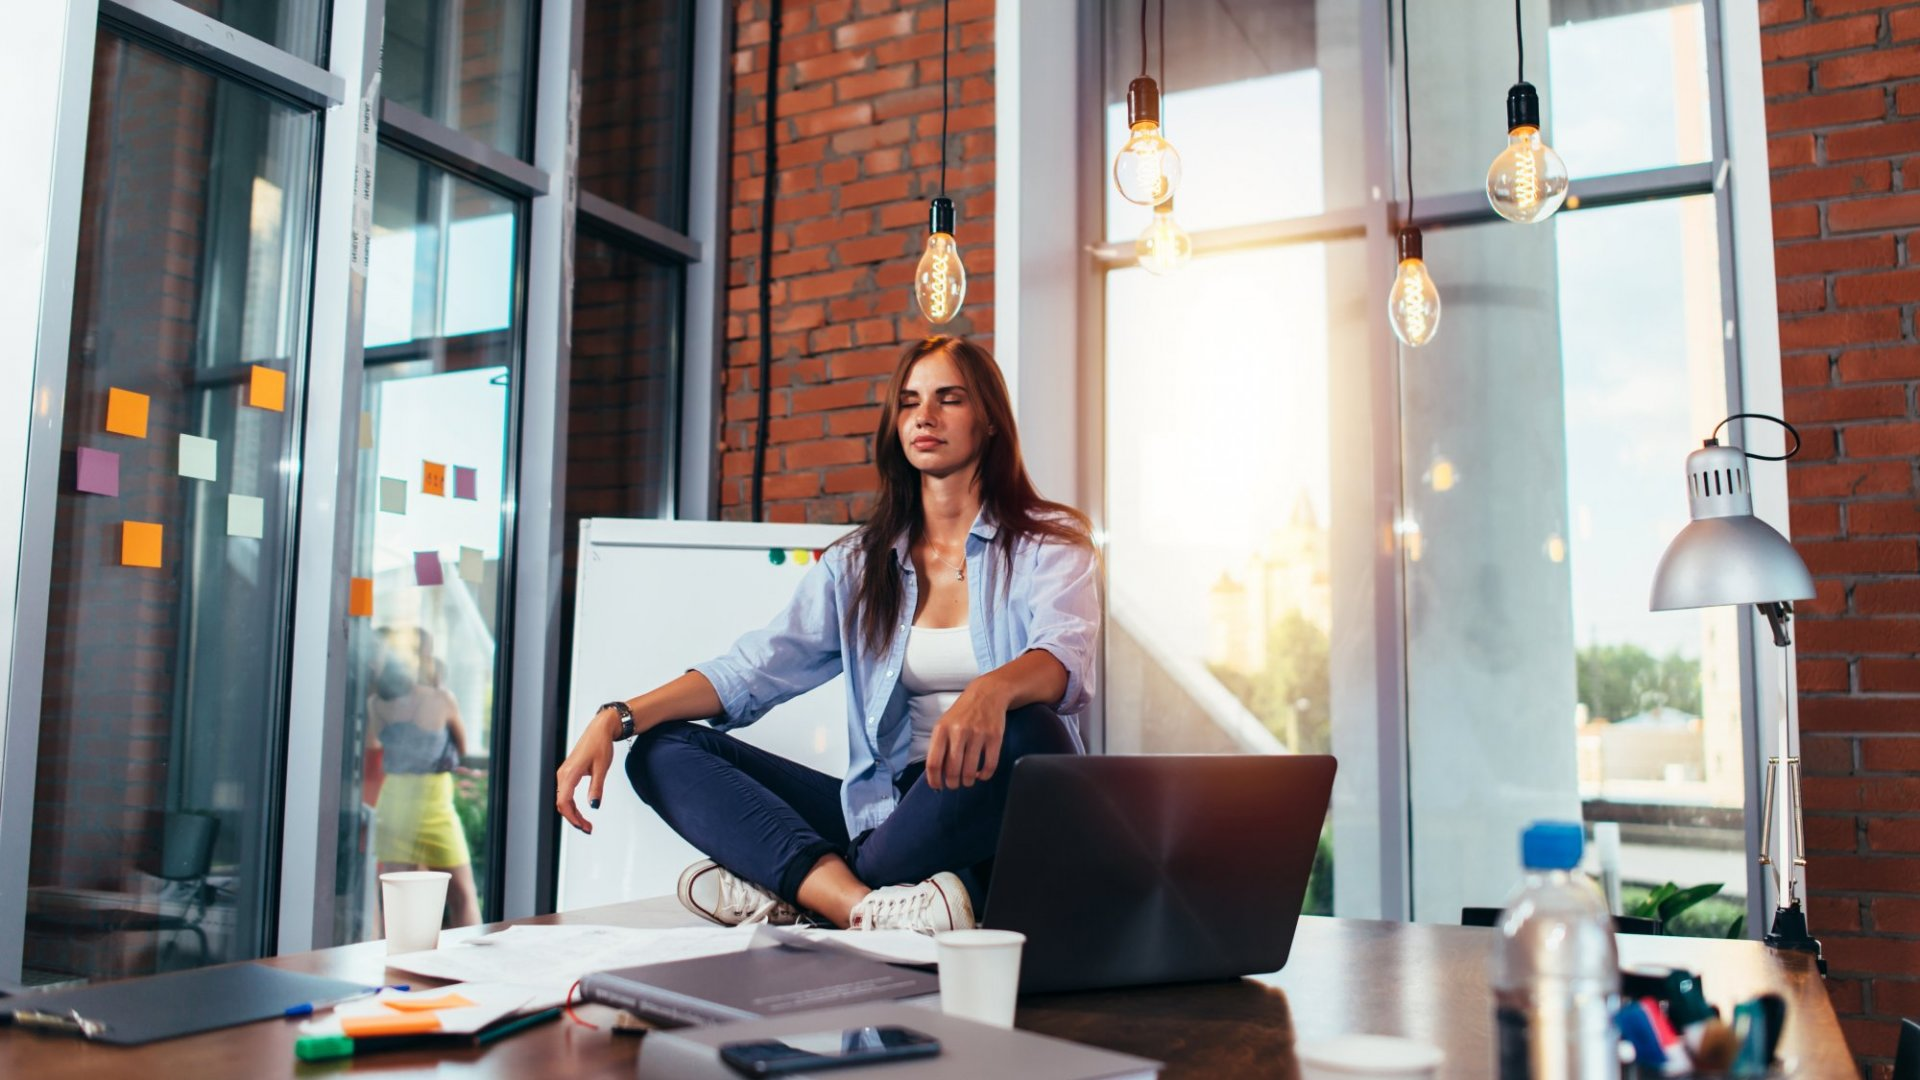 4 Wellness Trends That Can Help Your Bottom Line